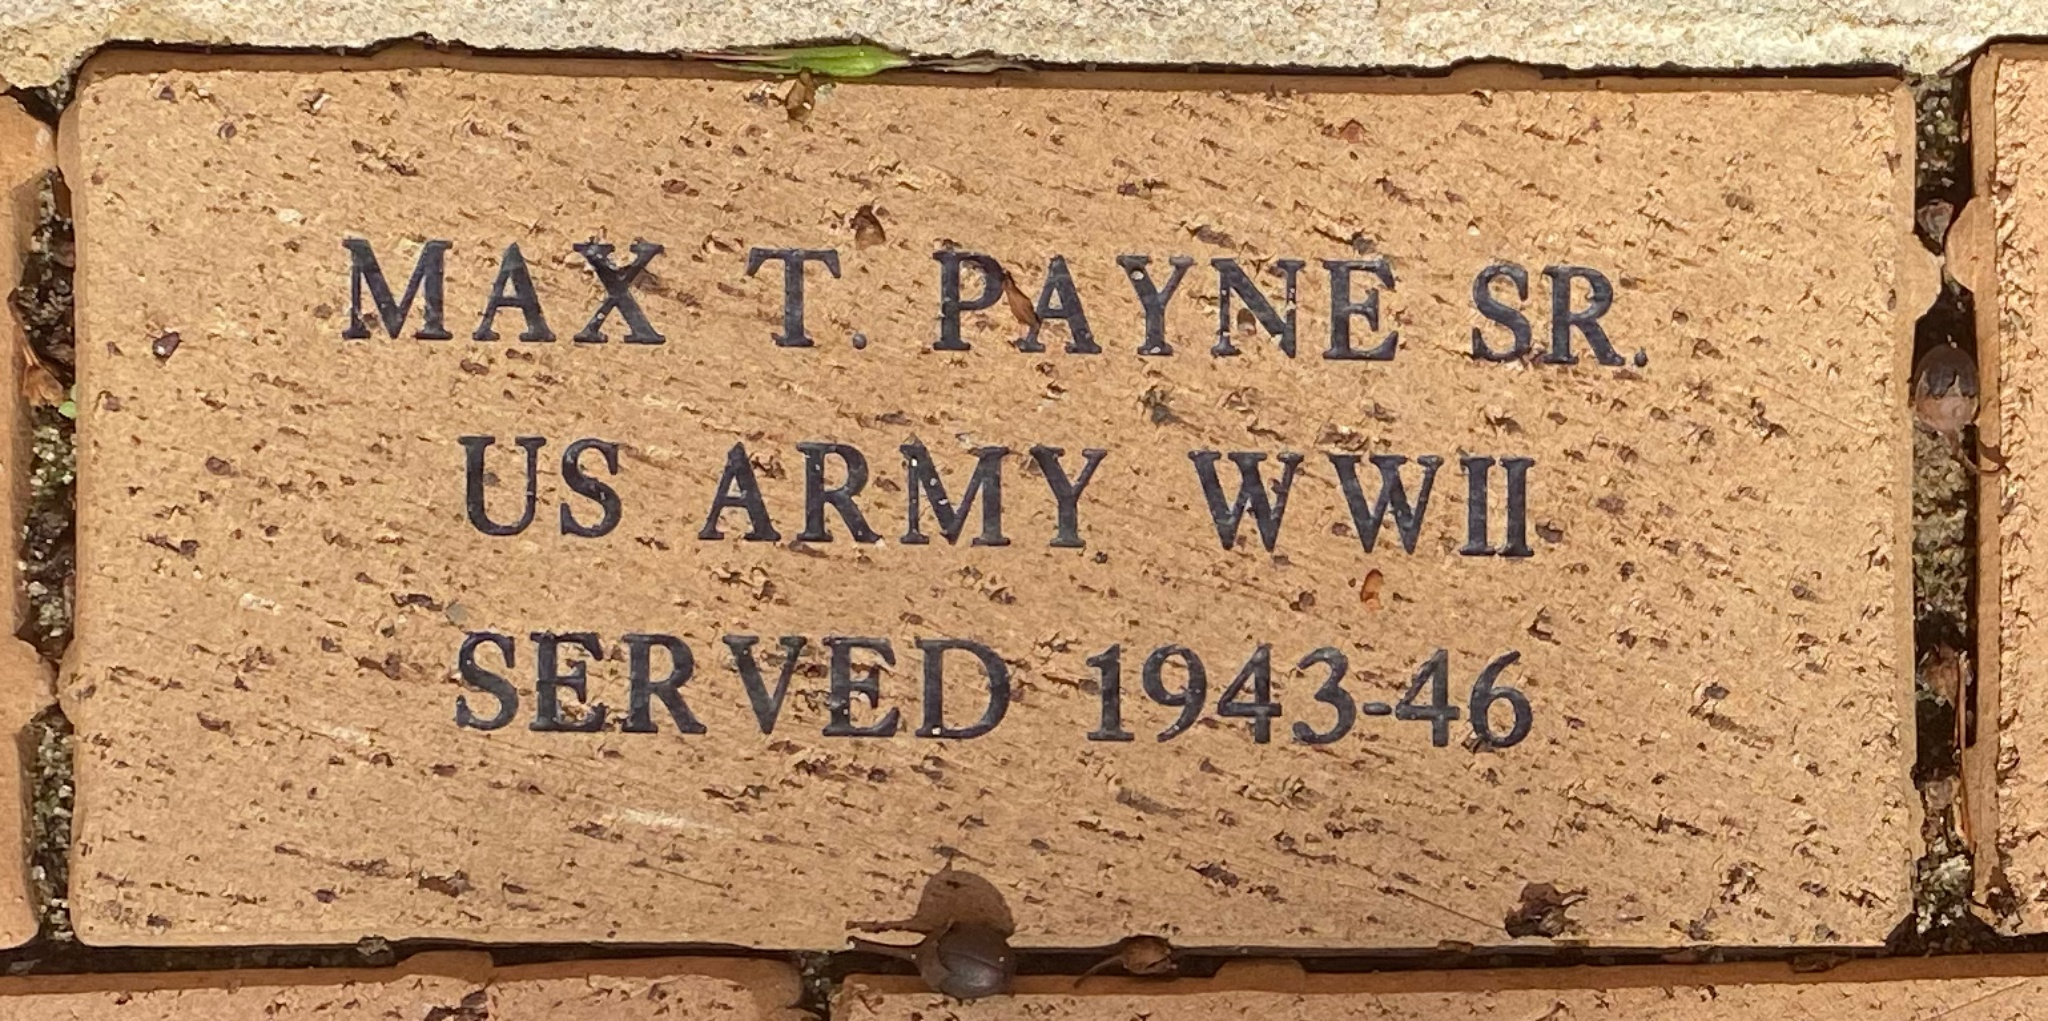 MAX T. PAYNE SR. US ARMY WWII SERVED 1943-46